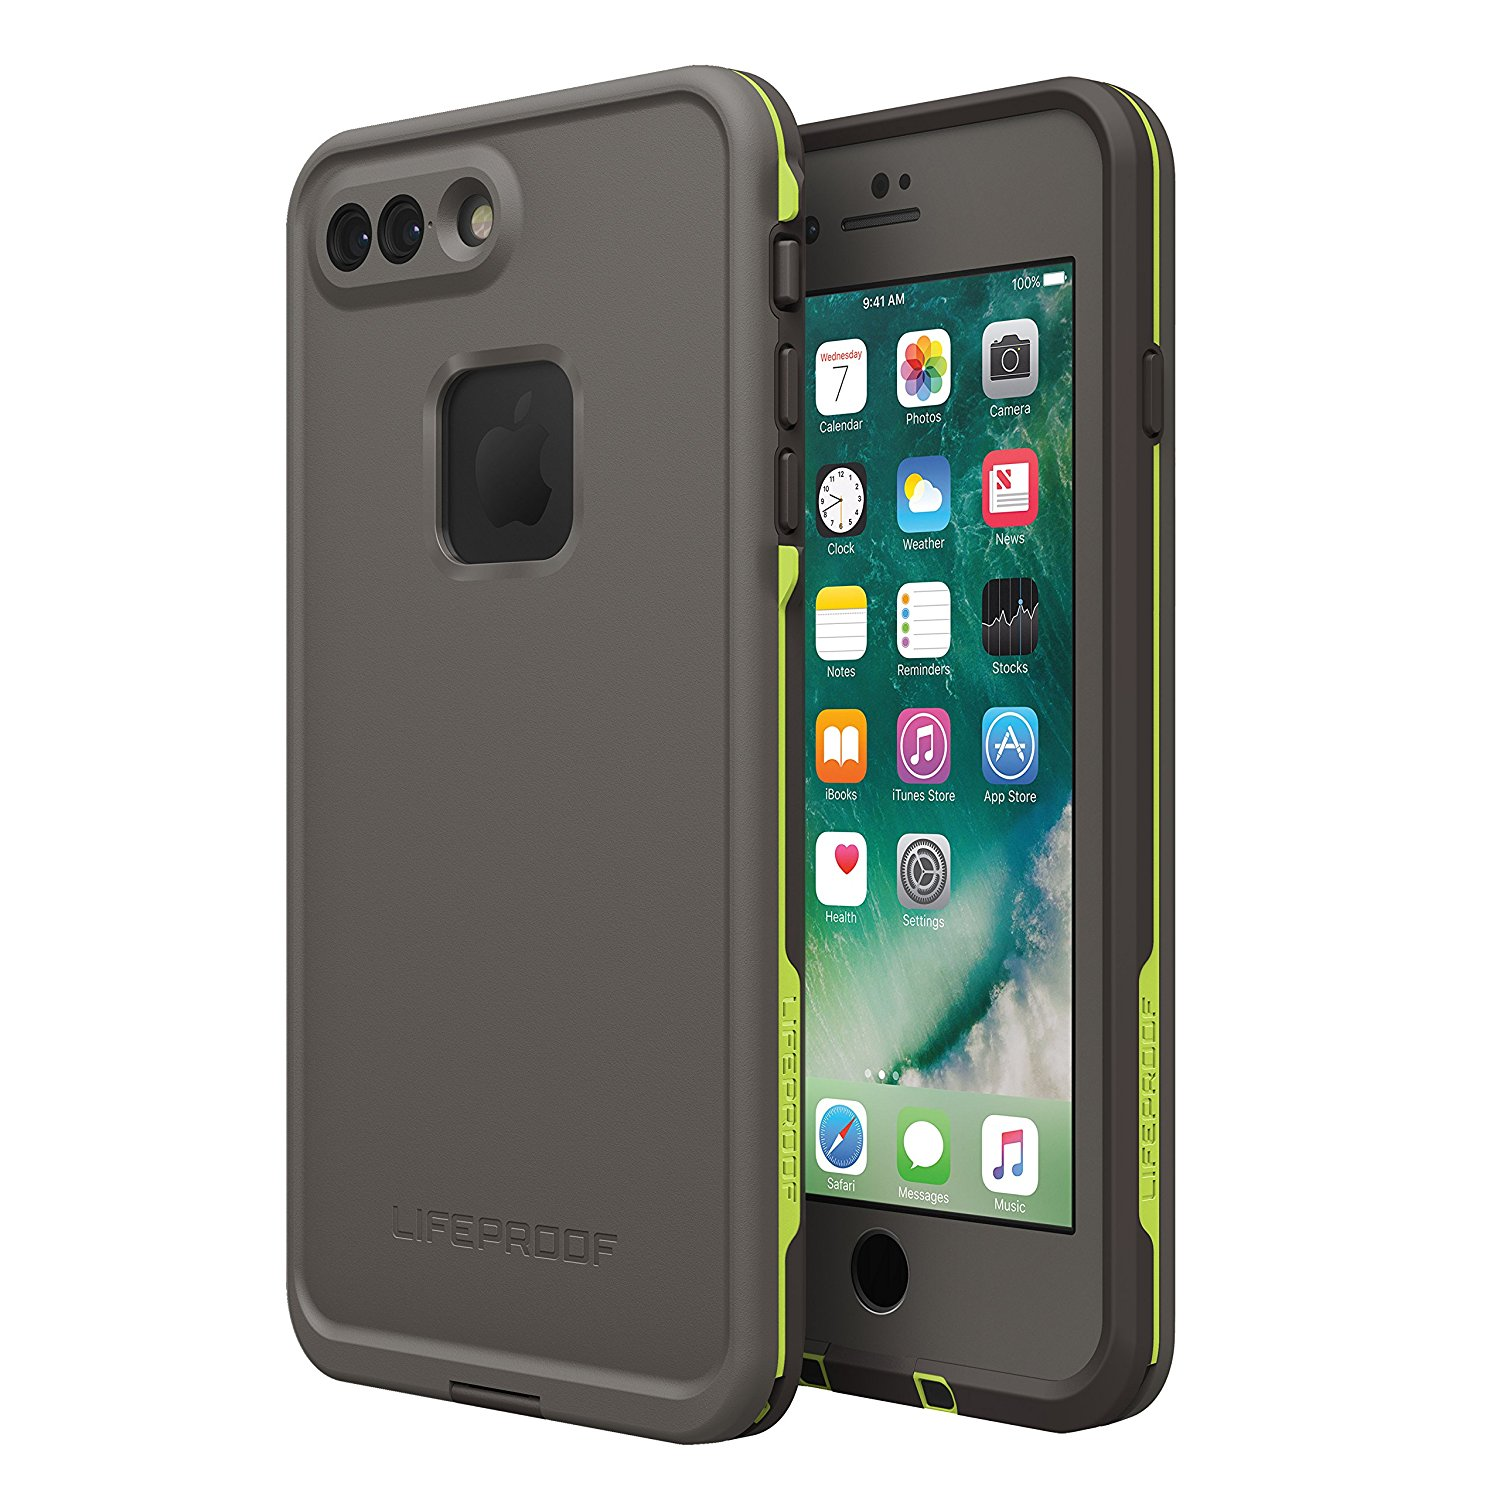 iphone video chat lifeproof fre series waterproof for iphone 7 plus 3266